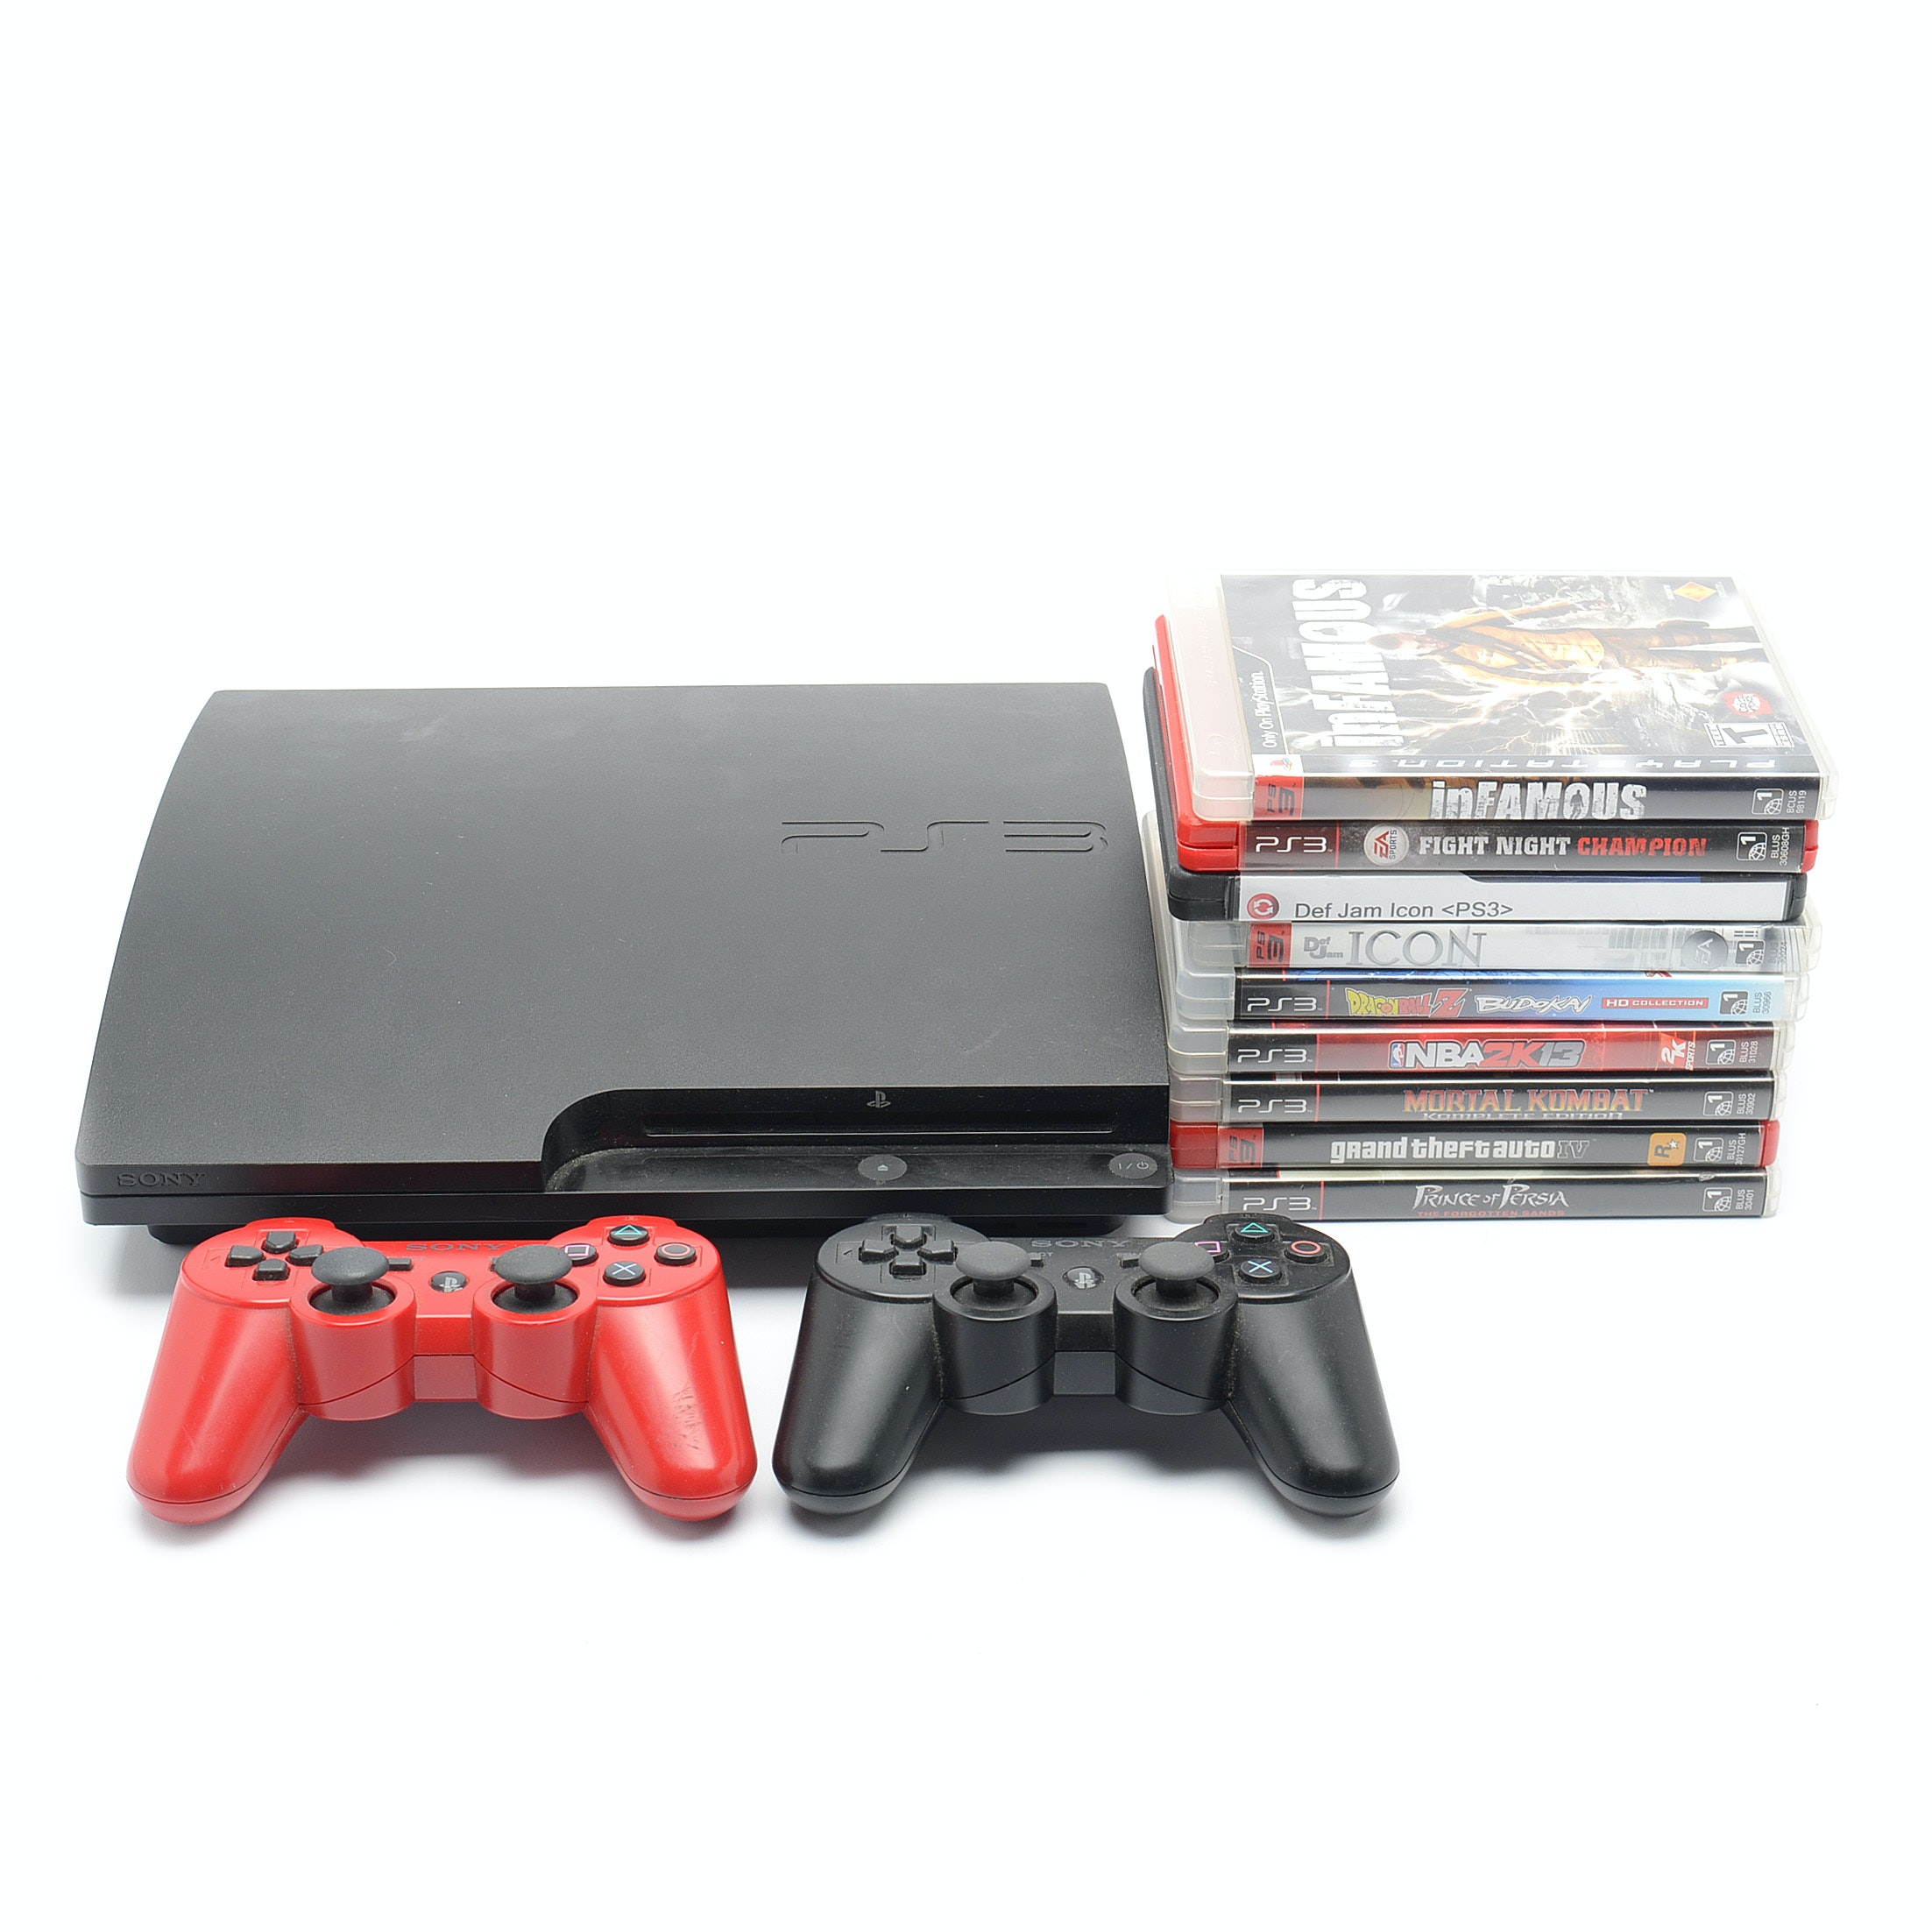 Sony PS3 Slim 320GB CECH-3001B with Controllers and Games